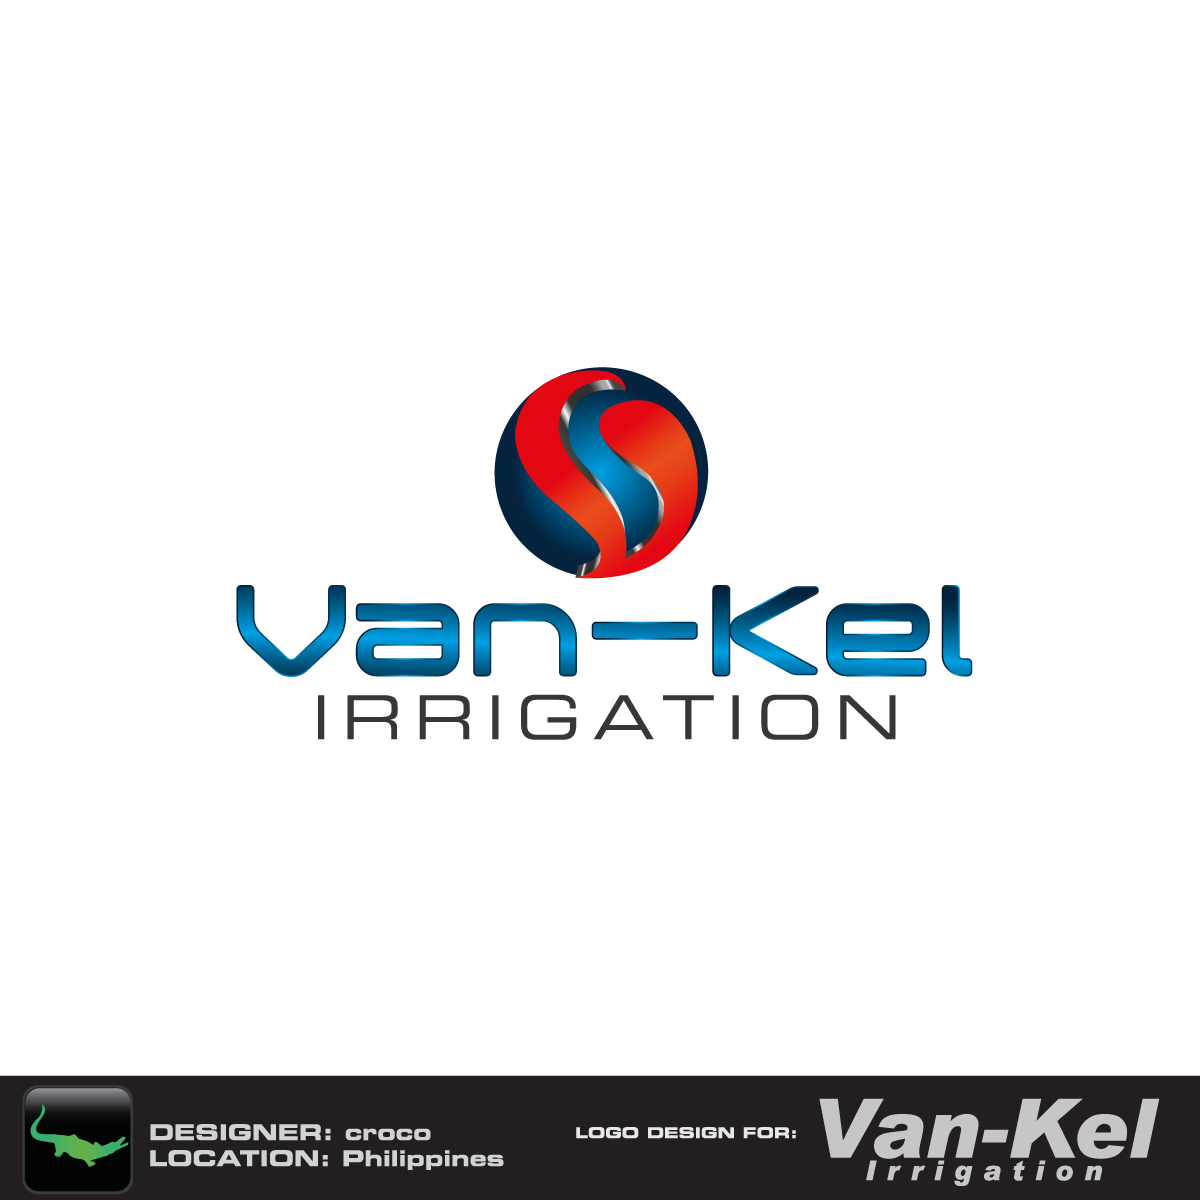 Logo Design by rockin - Entry No. 16 in the Logo Design Contest Van-Kel Irrigation Logo Design.